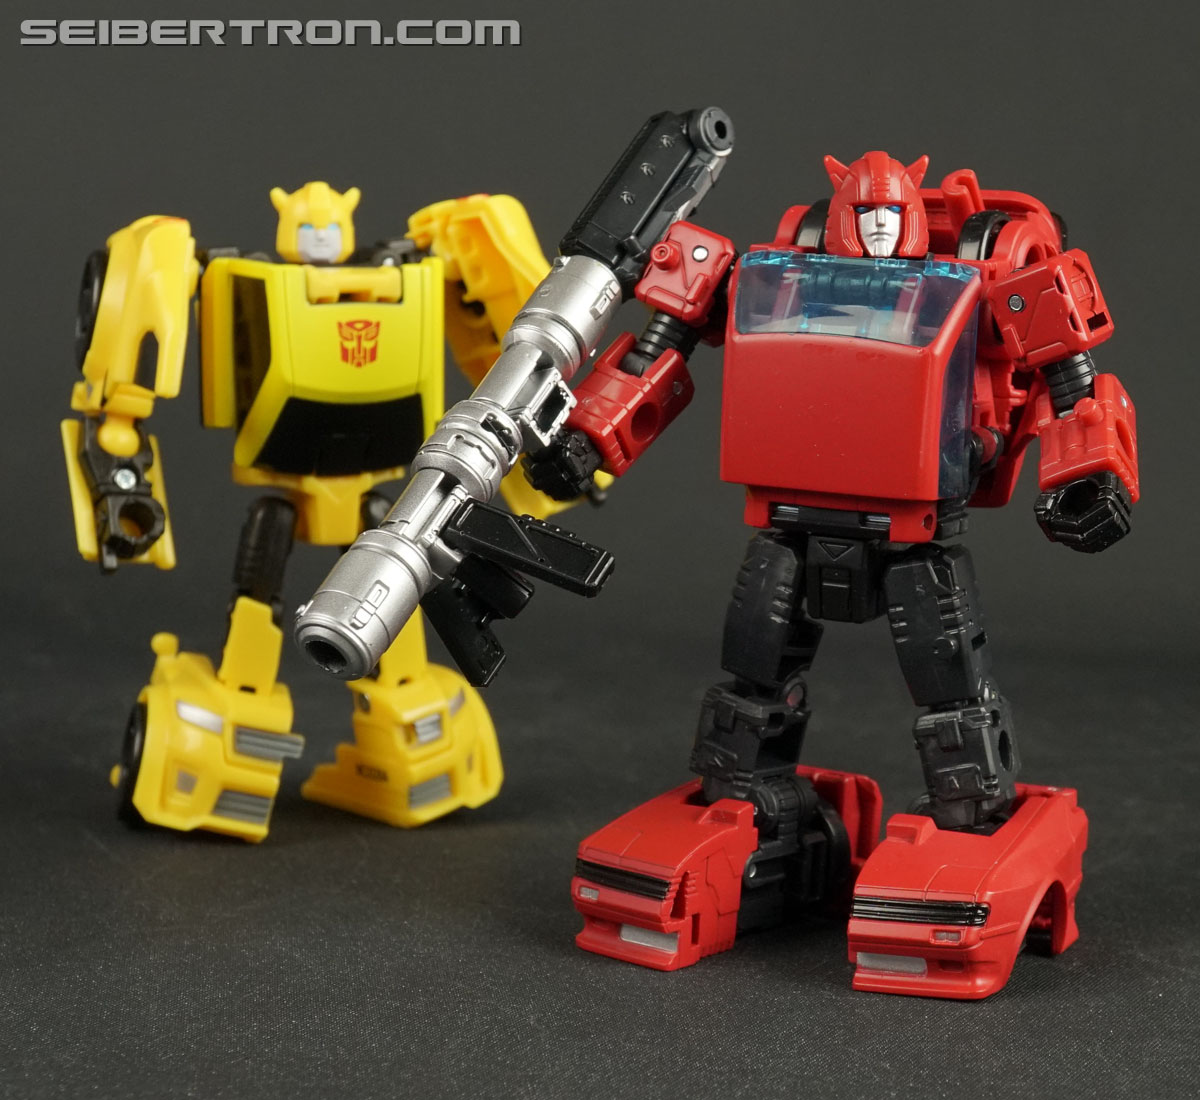 Transformers War for Cybertron: Earthrise Cliffjumper (Image #129 of 141)